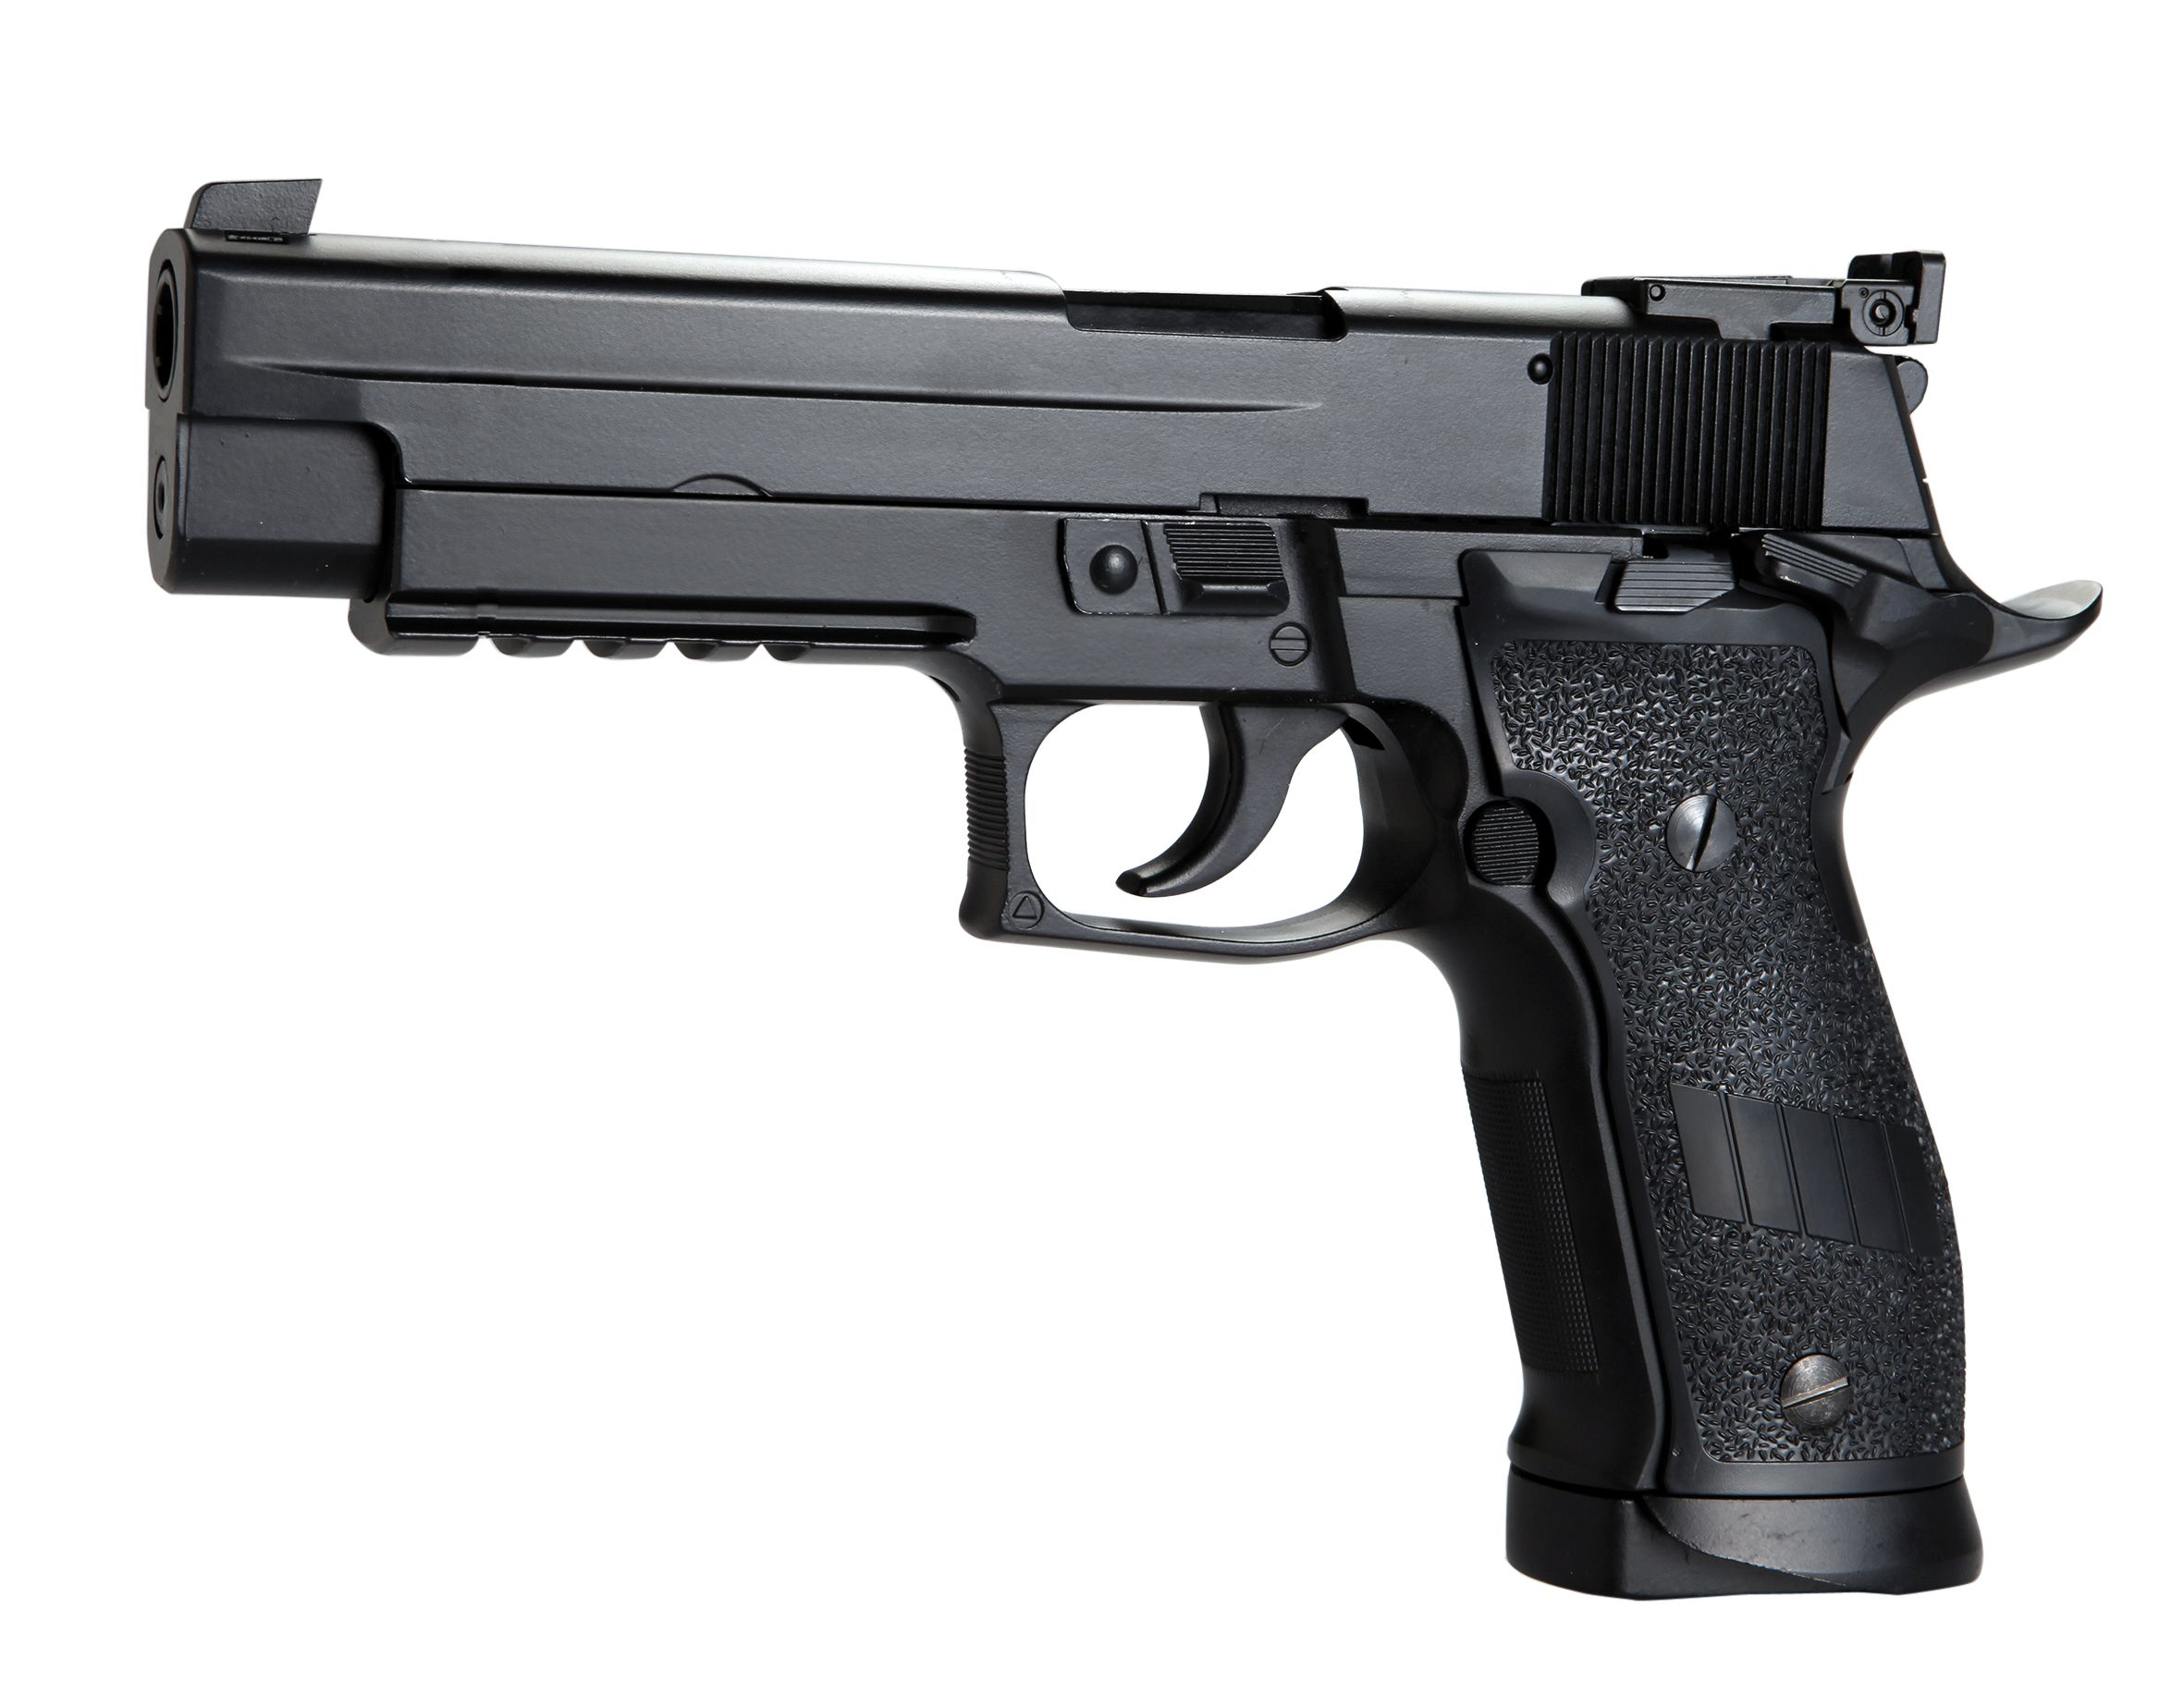 Pistola 622 BLOW BACK CO2 4.5 FULL METAL KMB-74AHN